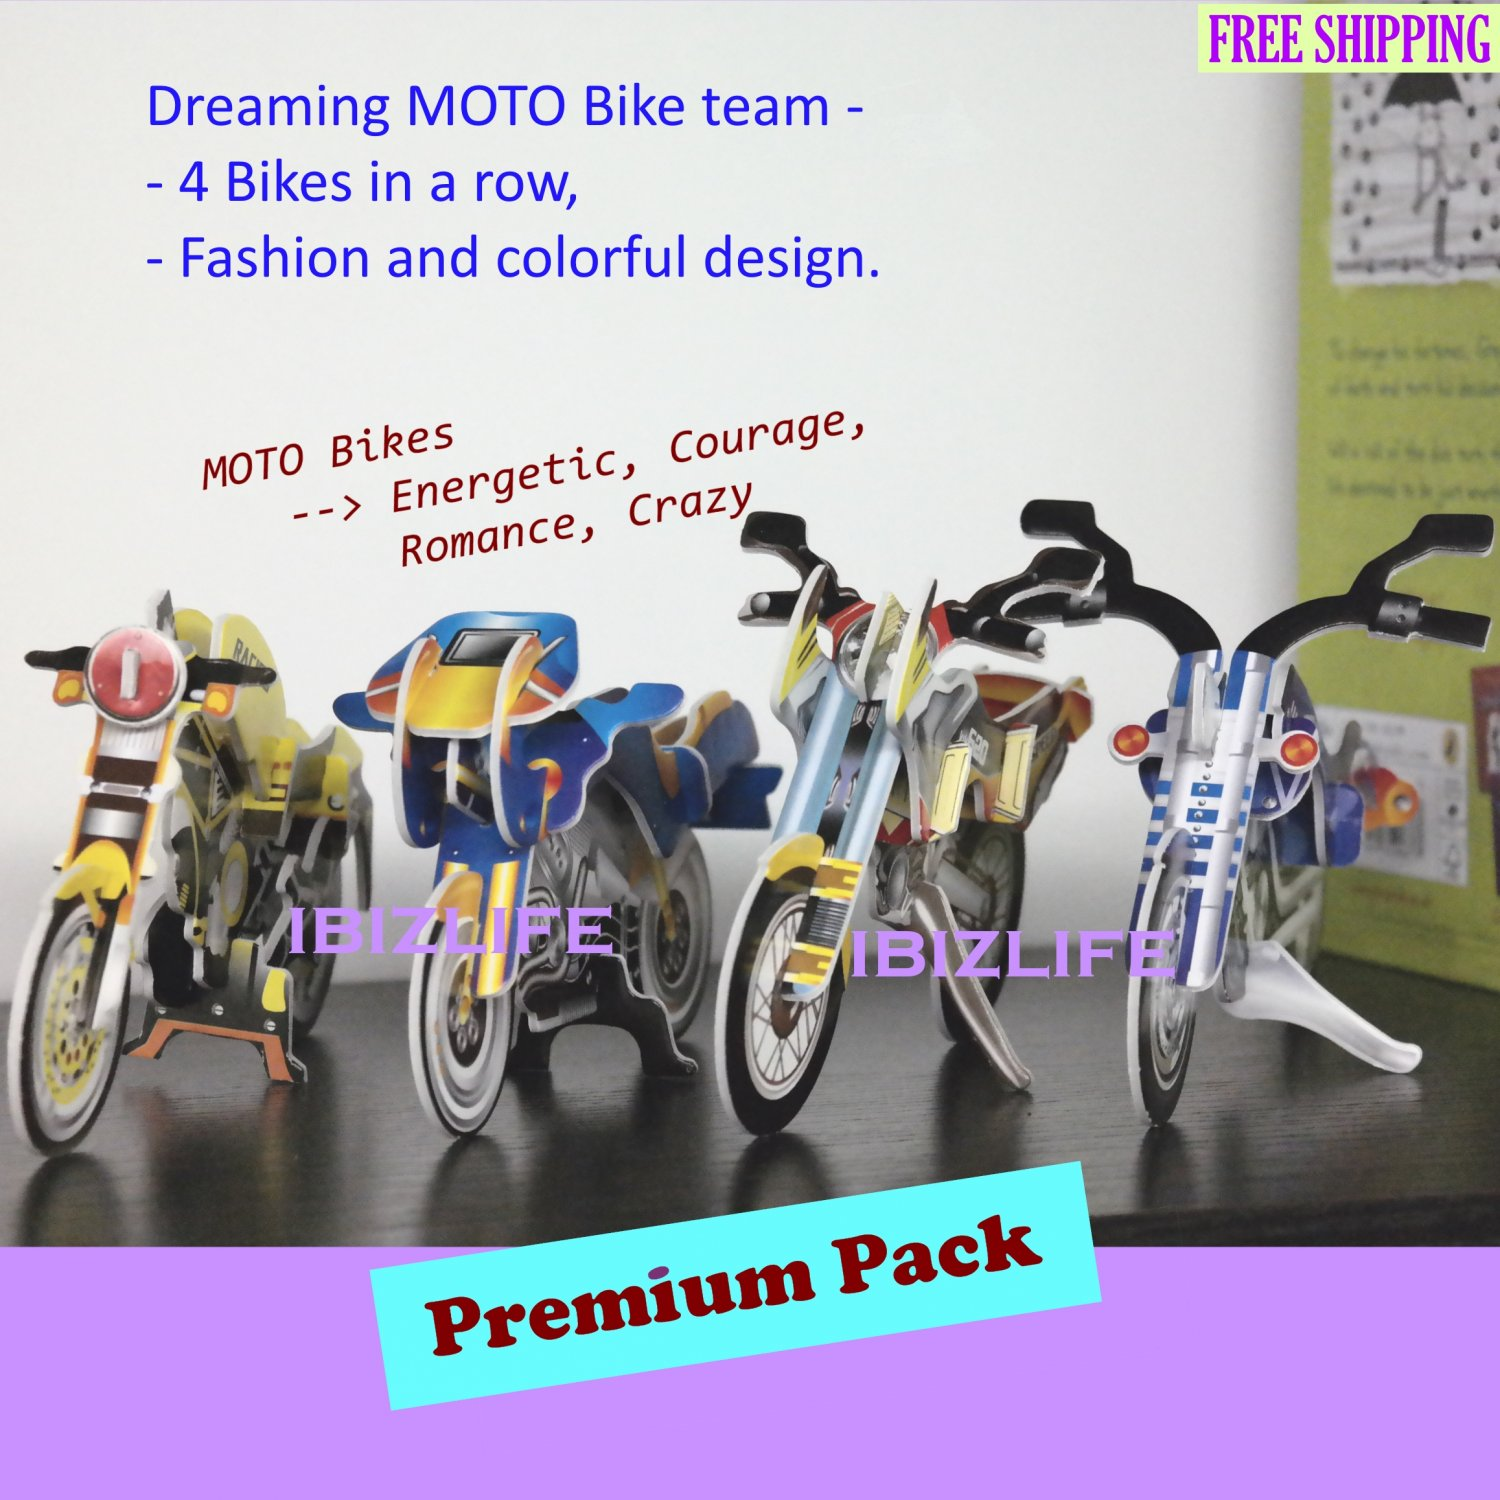 2 SETs of 3D PUZZLE DIY jigsaw model Moto Bikes gang as gift - Yellow & Blue color MOTOs  (PC41)